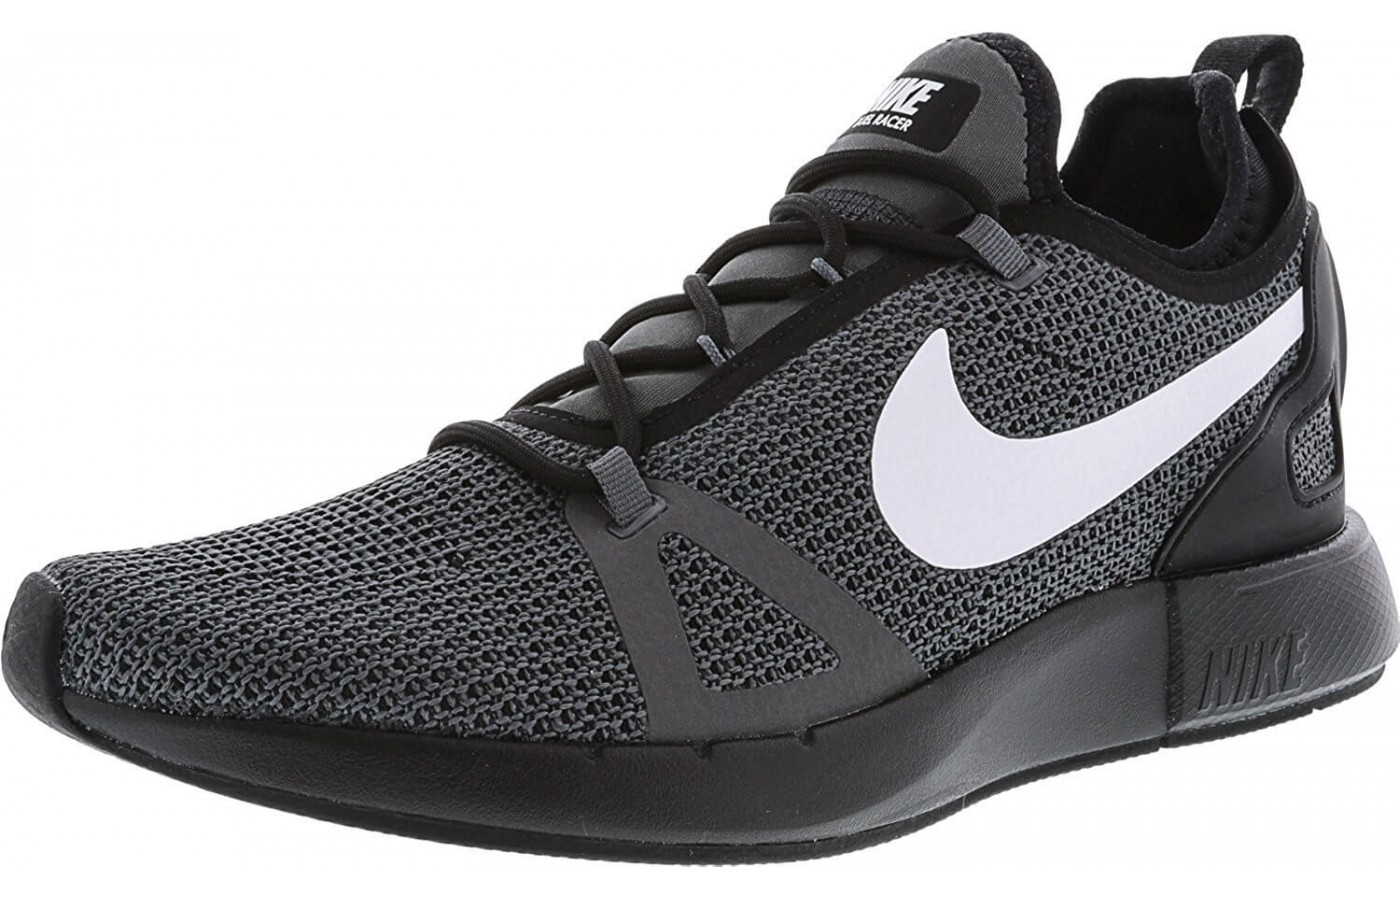 low priced 23746 480ee The Nike Duel Racer features a Phylon midsole ...